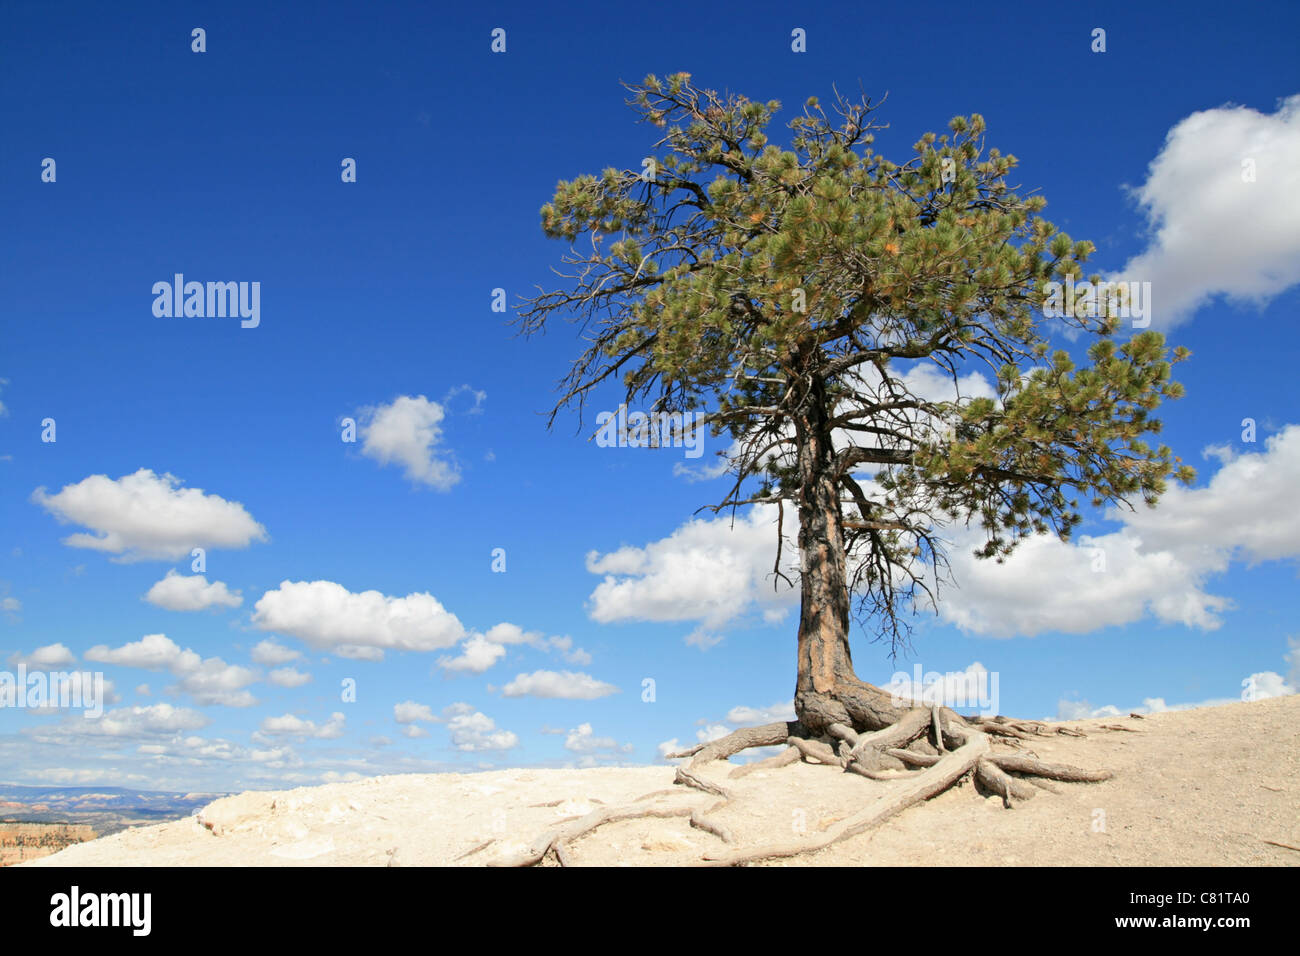 lone pine tree on the edge of a cliff with blue sky and clouds - Stock Image